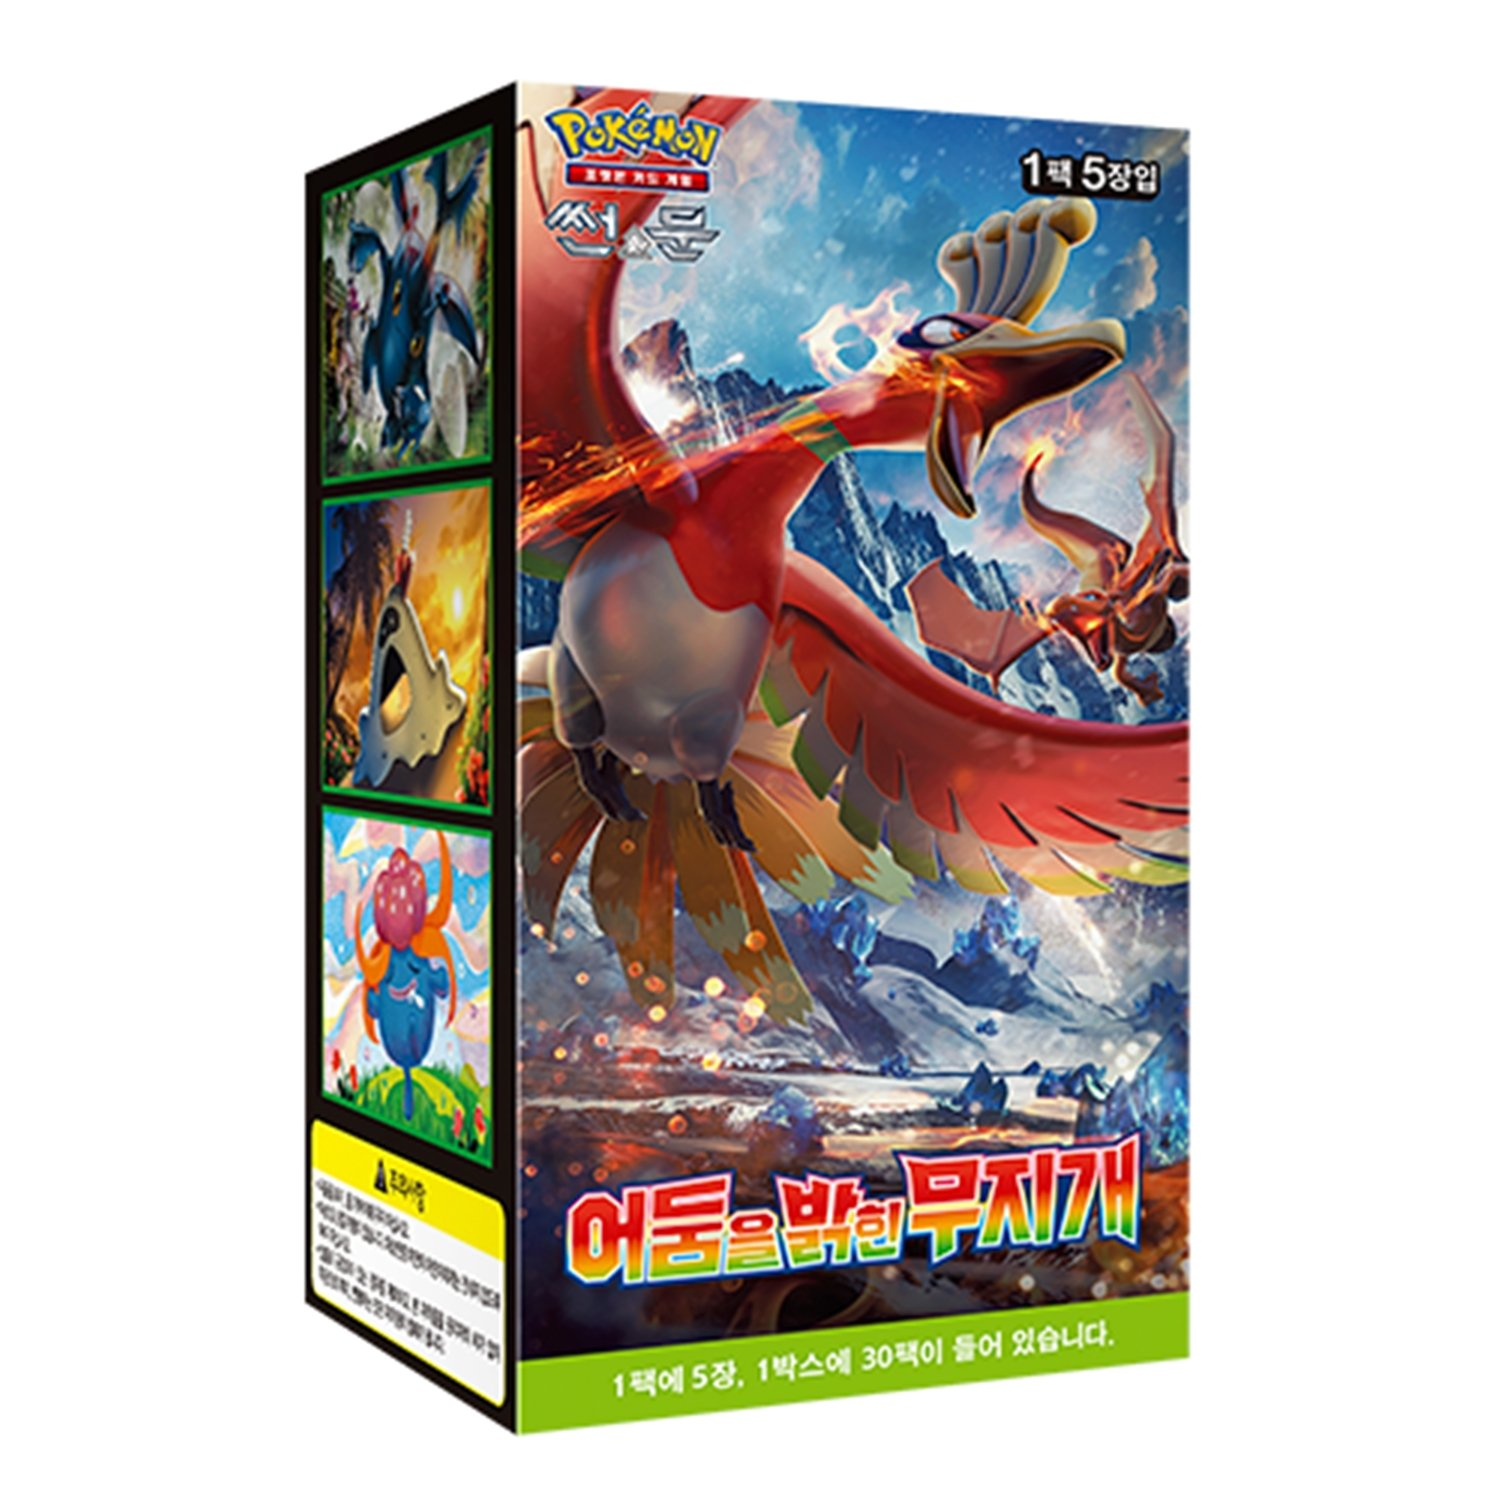 Pokemon Cartas Sun & Moon Booster Pack Caja 30 Packs en 1 caja ...